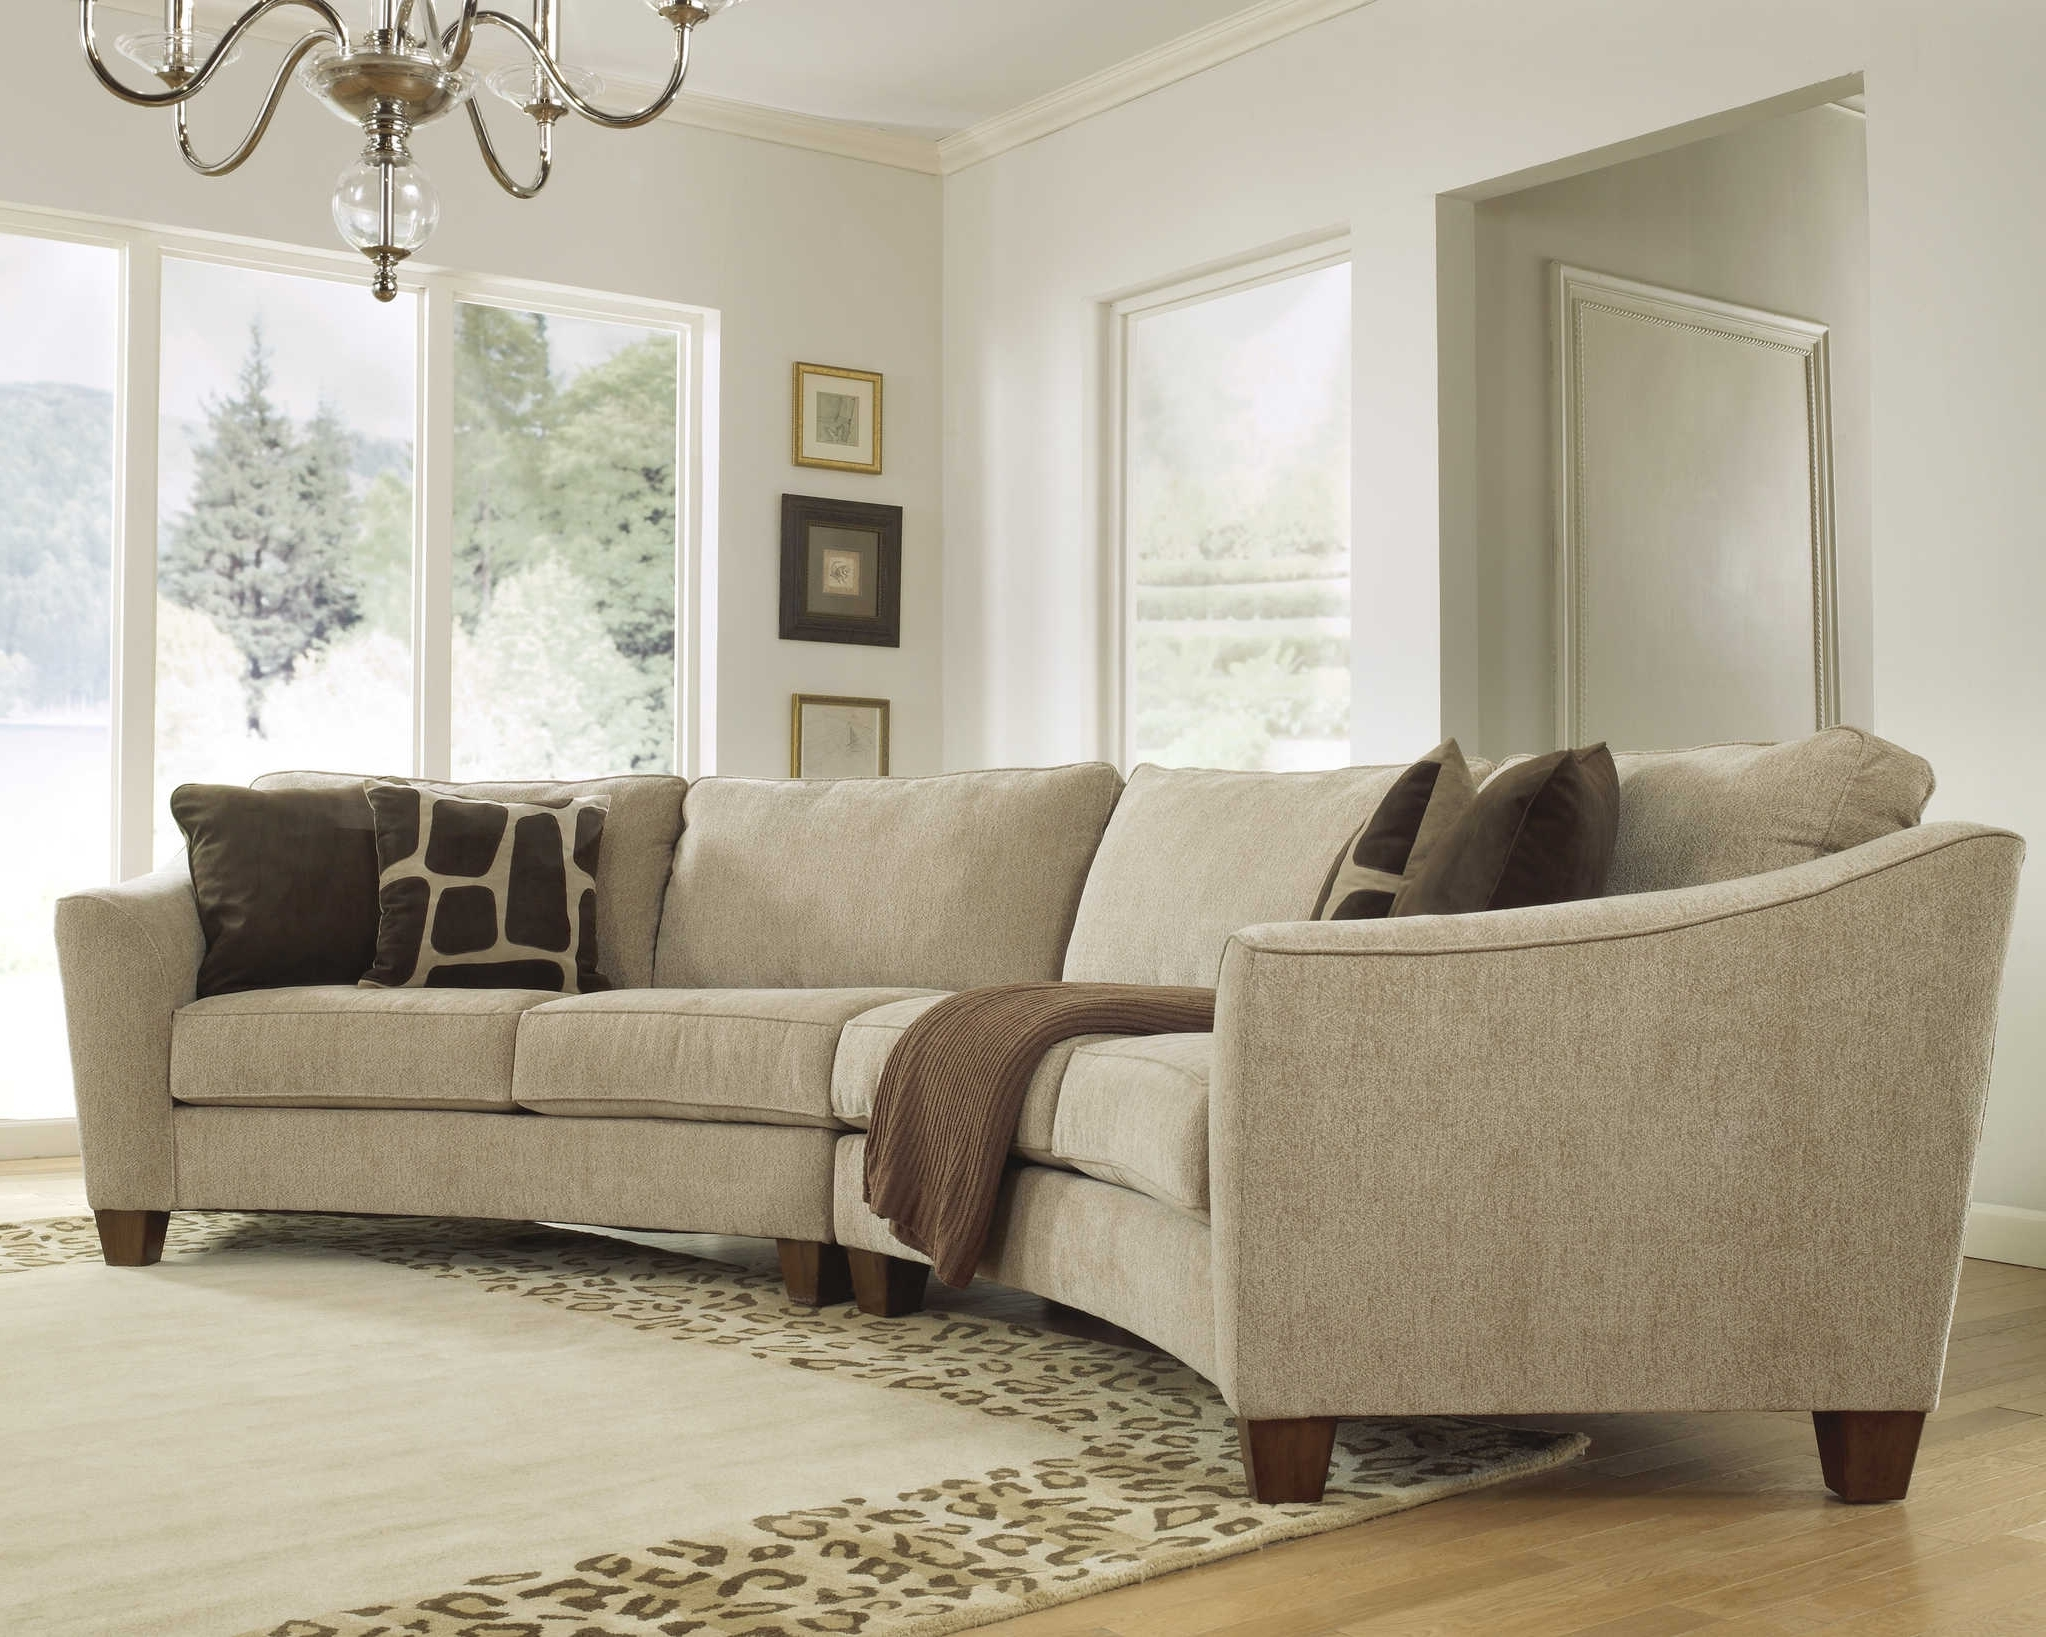 Favorite Wichita Ks Sectional Sofas With Bedroom: Ashley Furniture Wichita Ks Cozy Beautiful White Sofa (View 6 of 15)